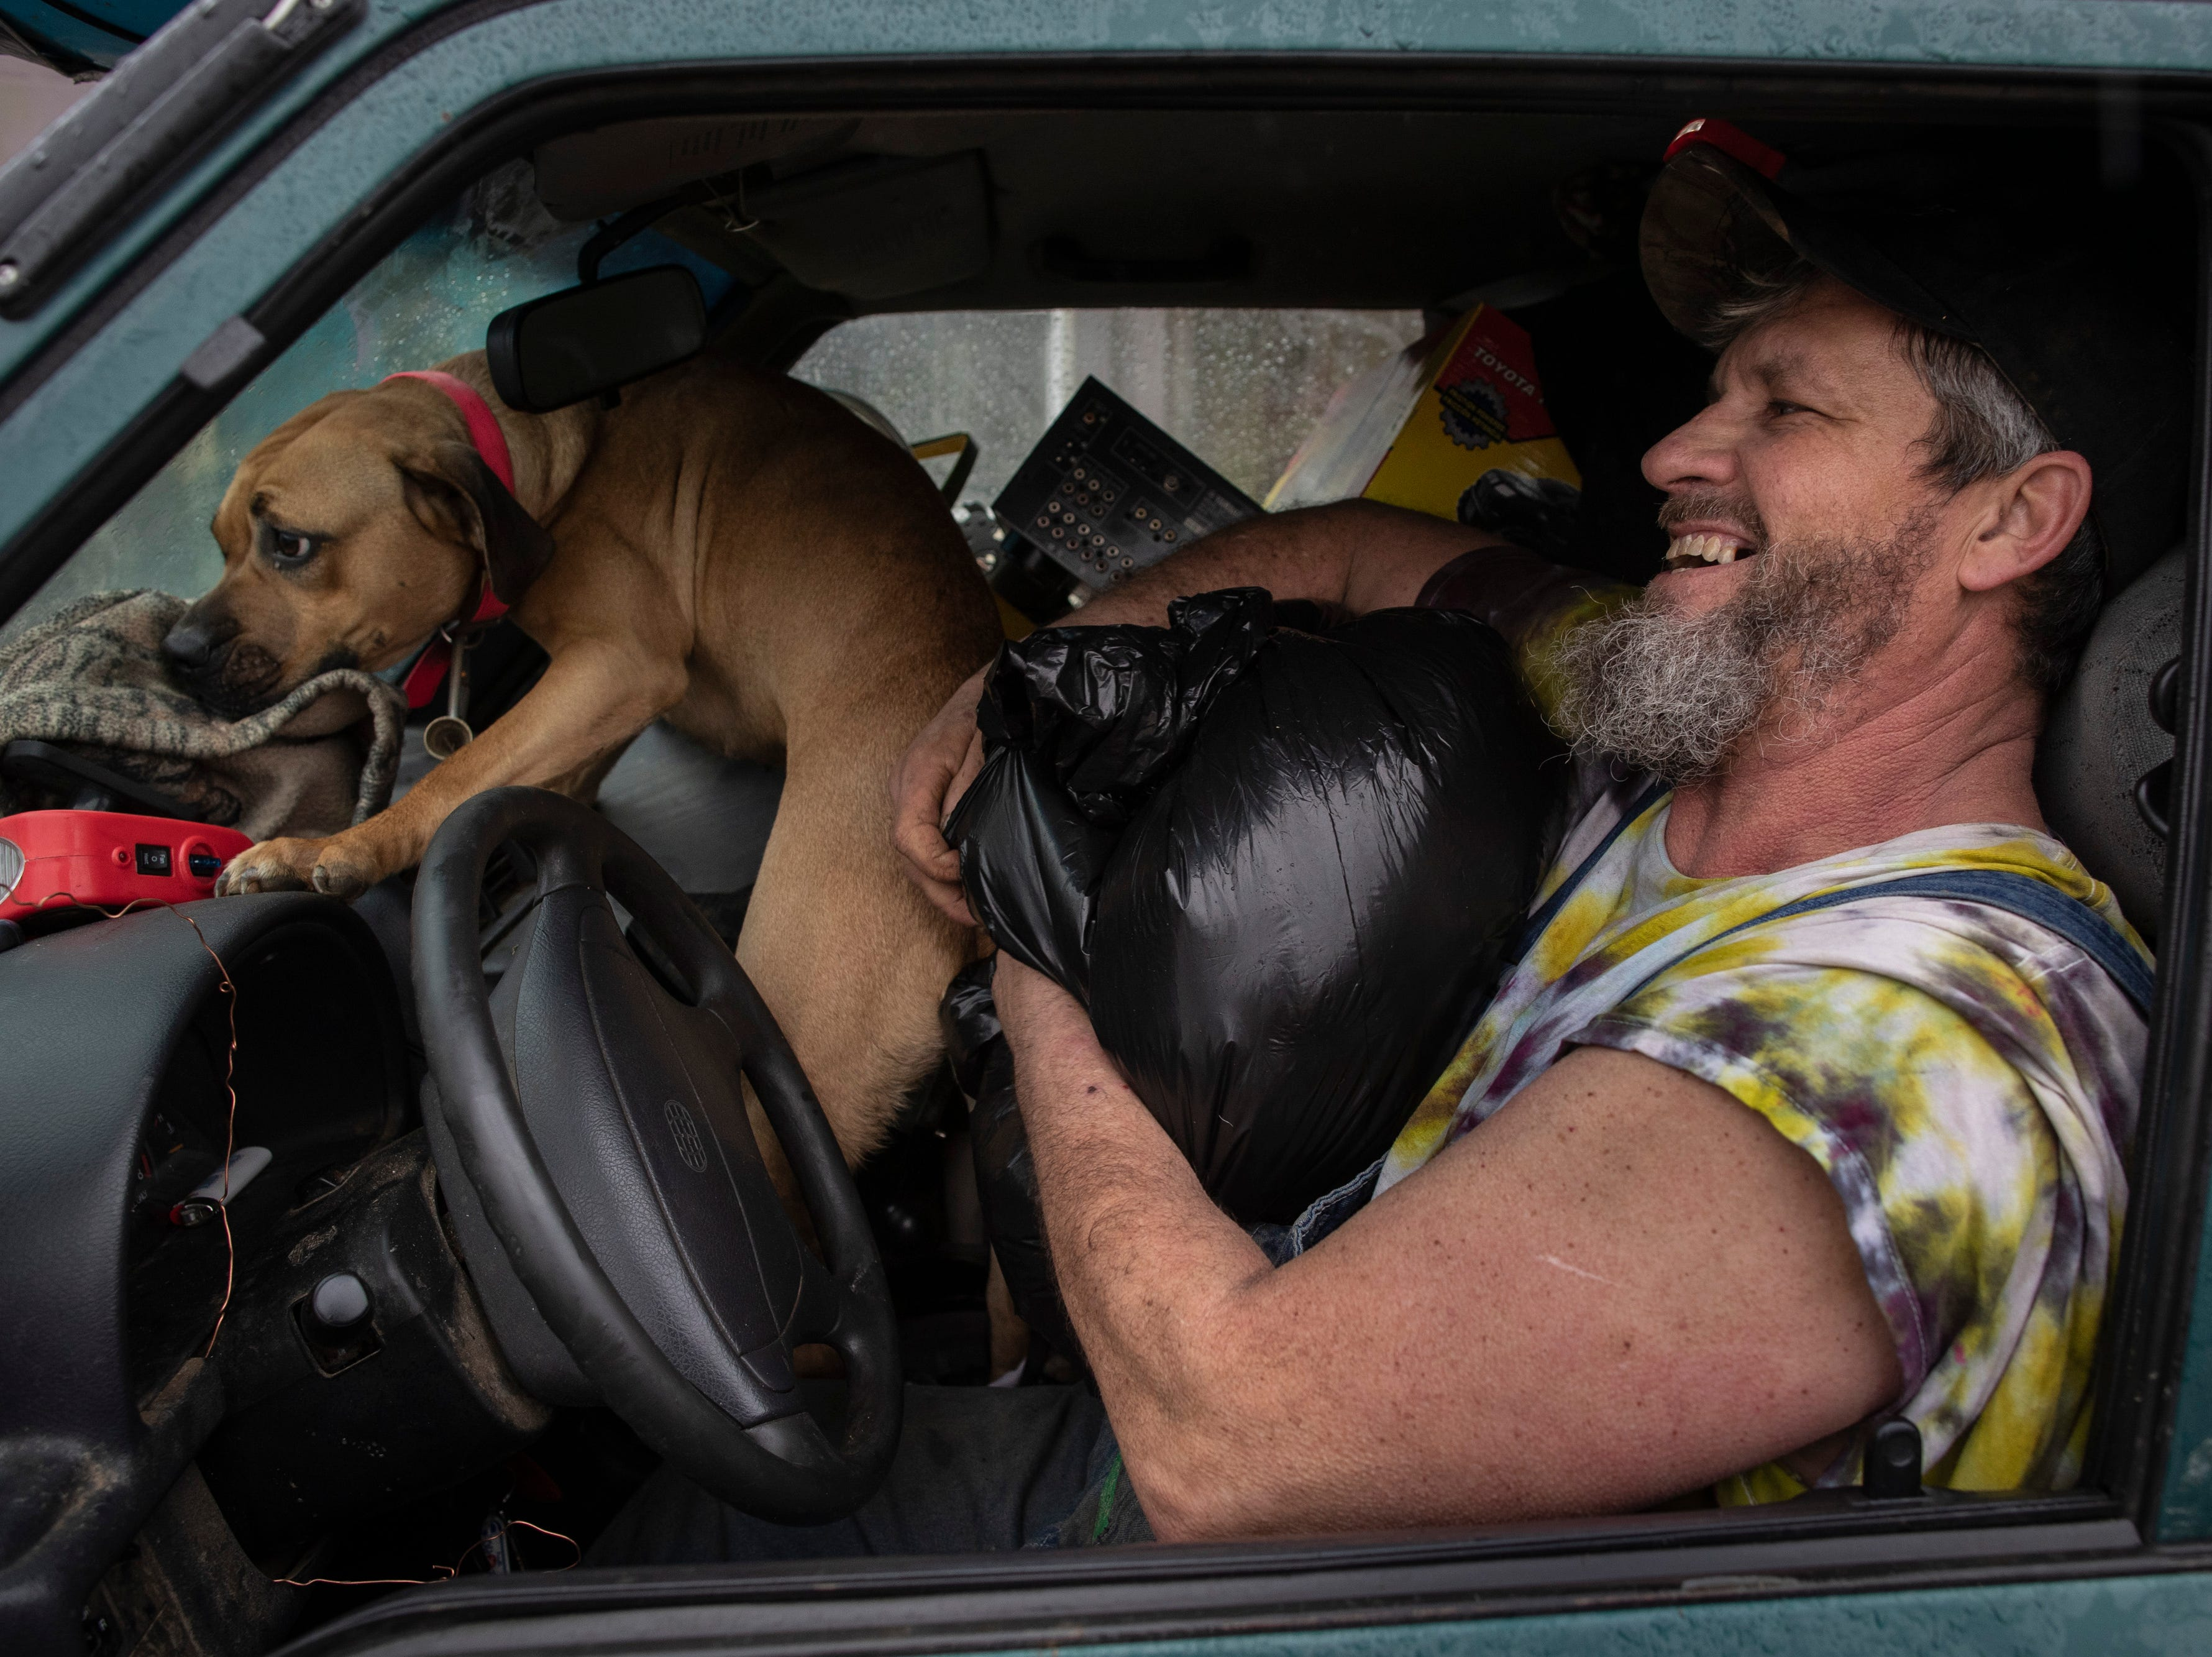 """Chip Jordan, right, has a laugh as he tries to fit all of his belongings into his vehicle with his dog Dixie Tuesday to escape the high waters along River Road. """"I had a compound fracture in my leg that kept me laid up six months while I dealth with this last year,"""" Jordan said. """"I still love it."""" Feb. 12, 2019"""